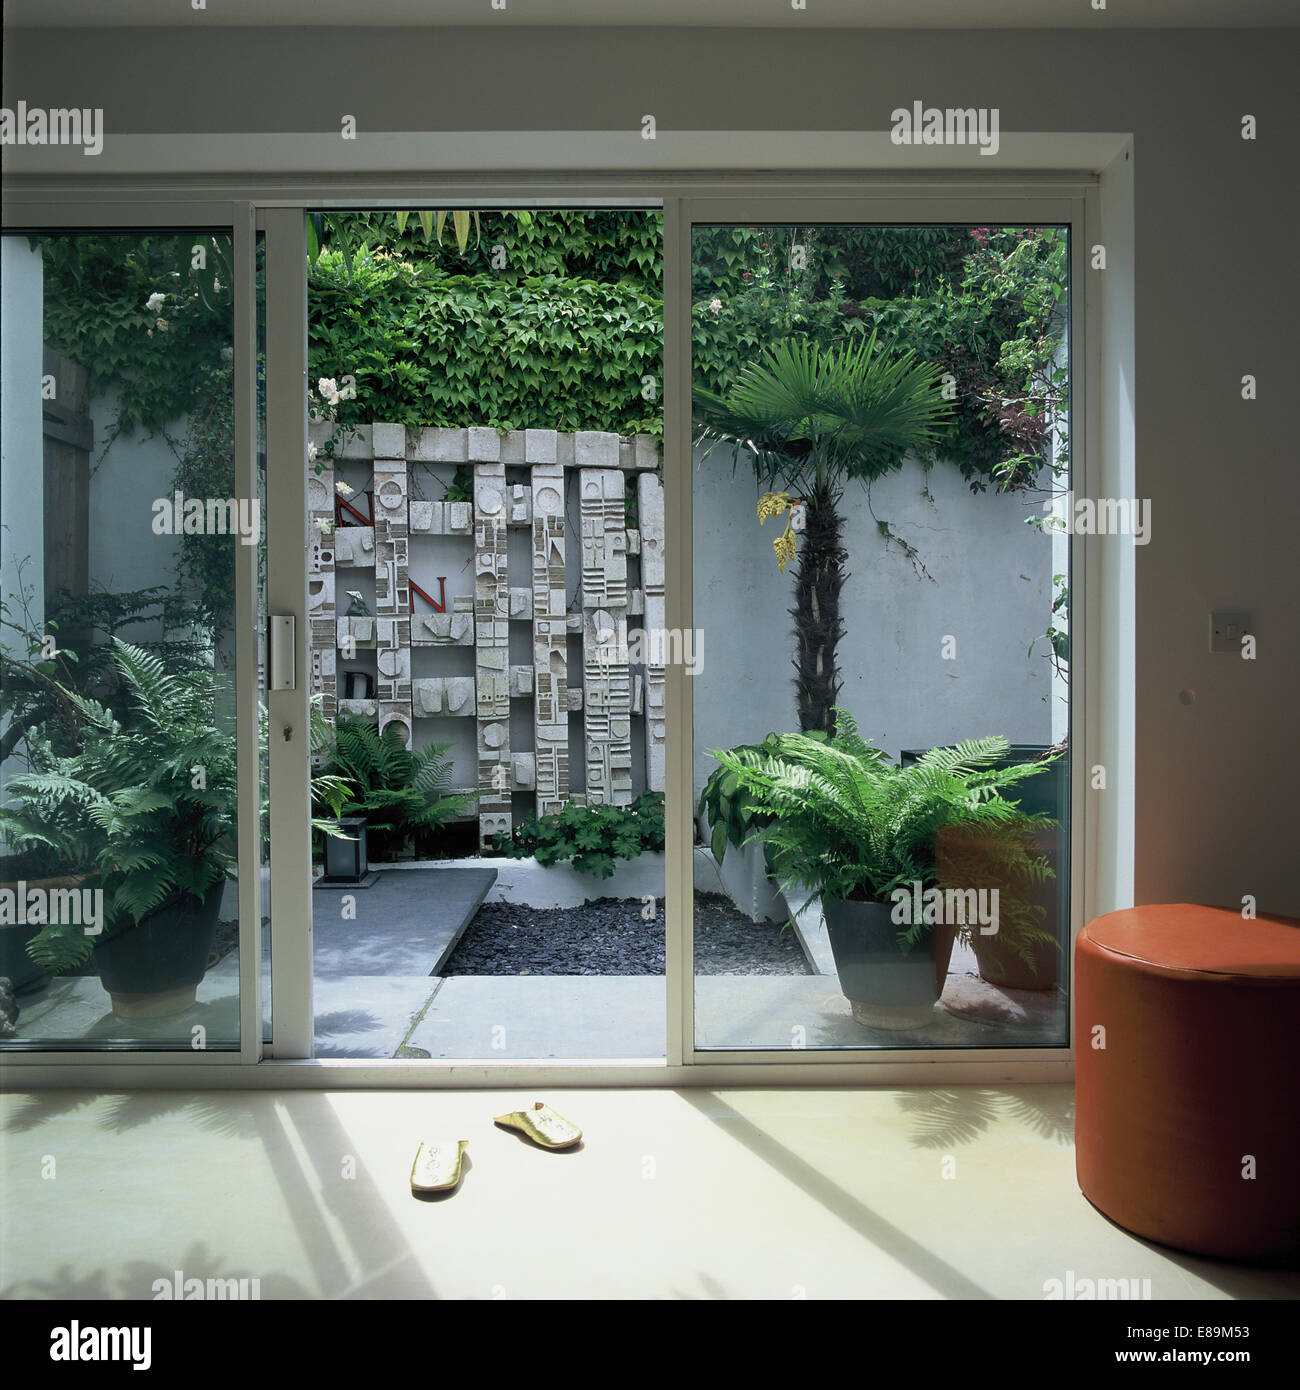 View Through Glass Patio Doors To Courtyard Garden With